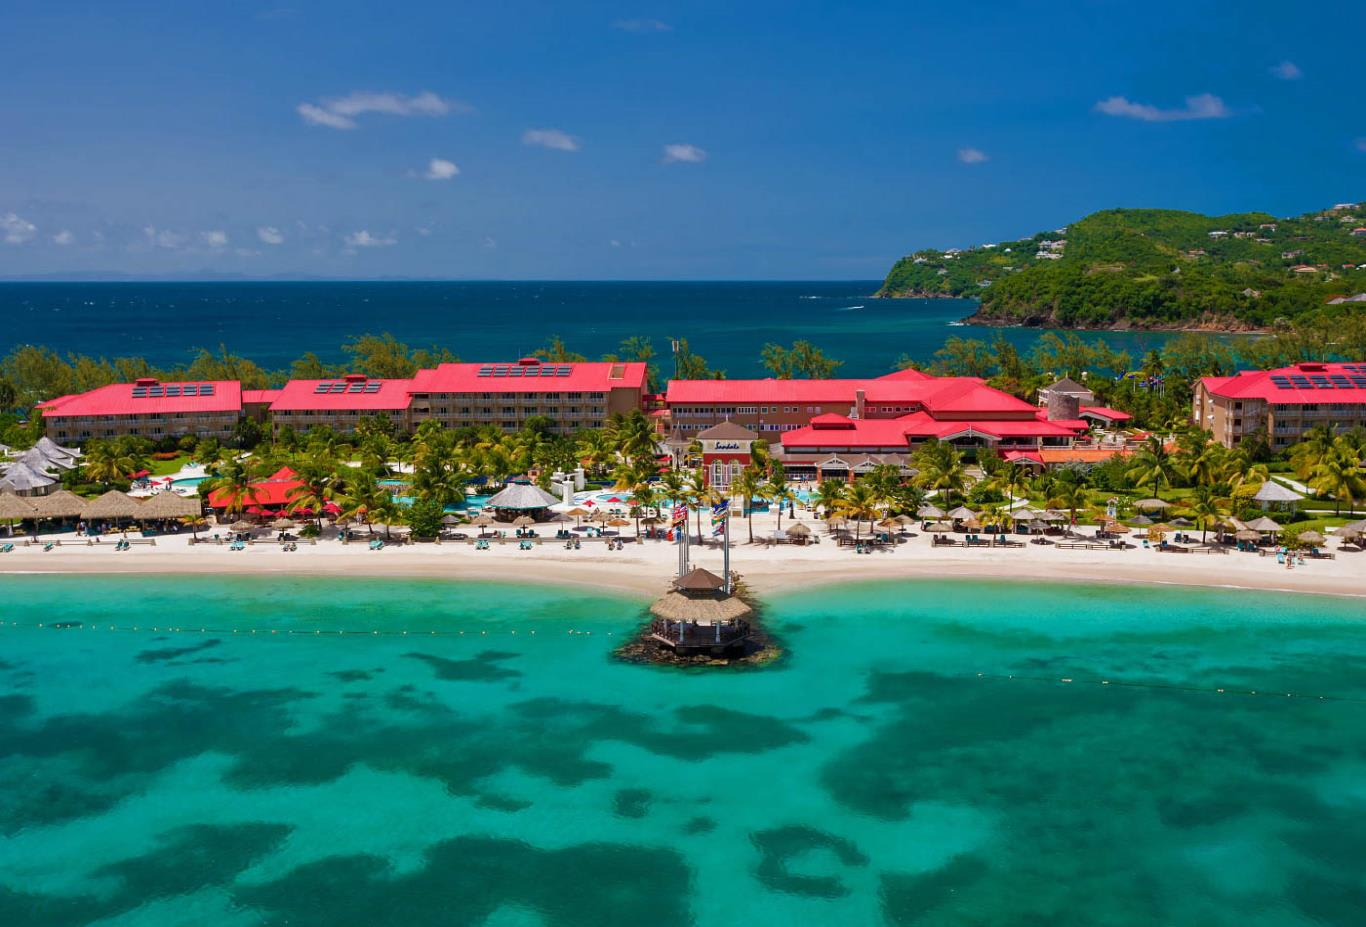 3a774df89 Sandals Grande St Lucian Spa And Beach Resort. Destinology Recommended.  Aerial View